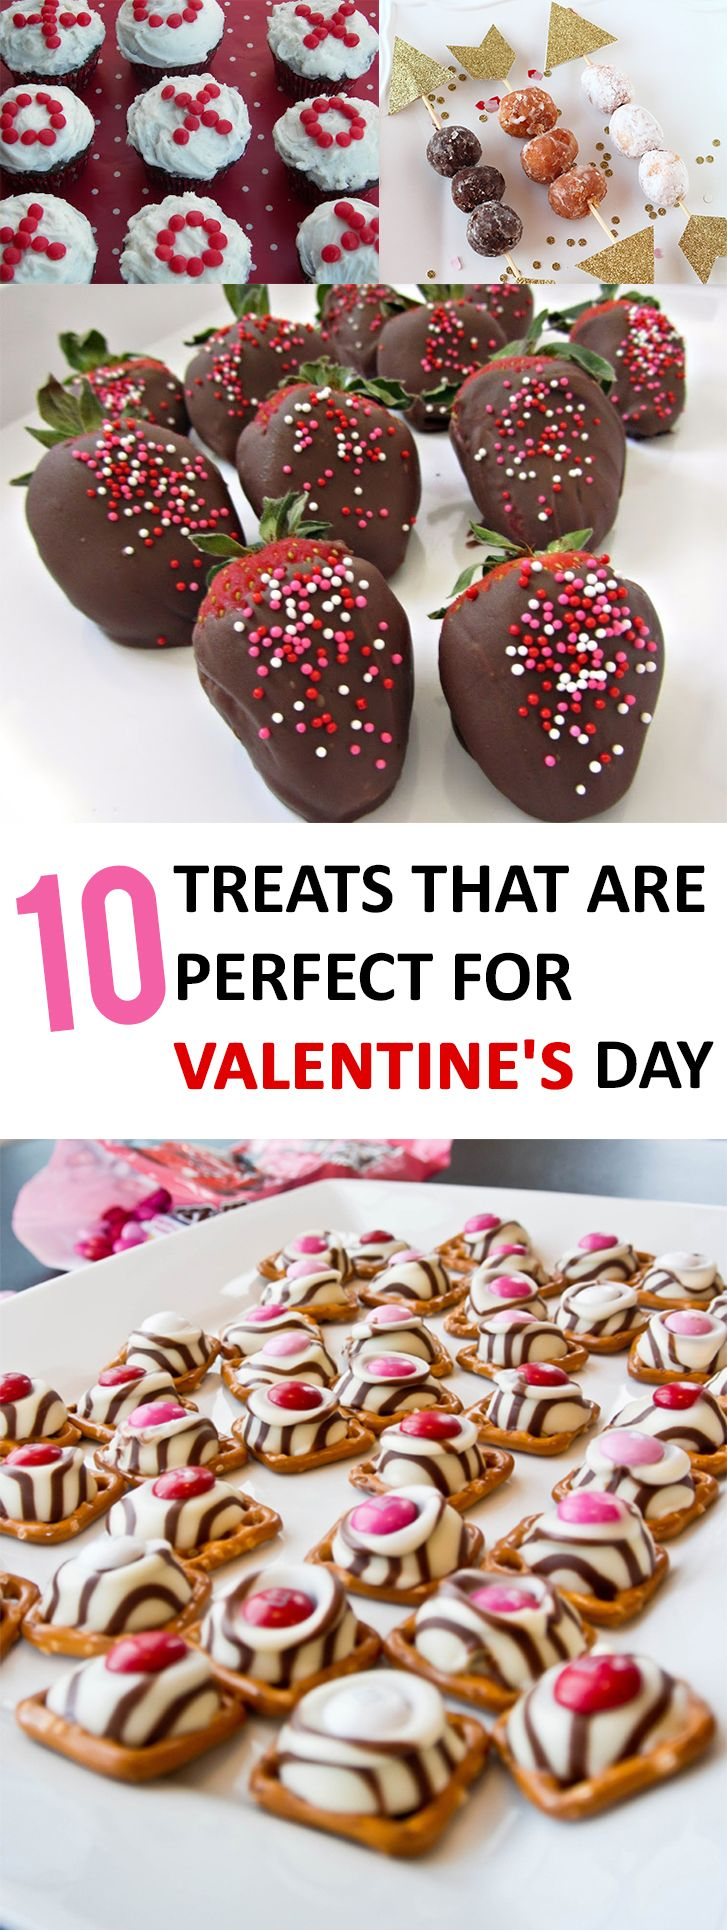 Best 25 Cute Valentines Day Ideas Ideas On Pinterest